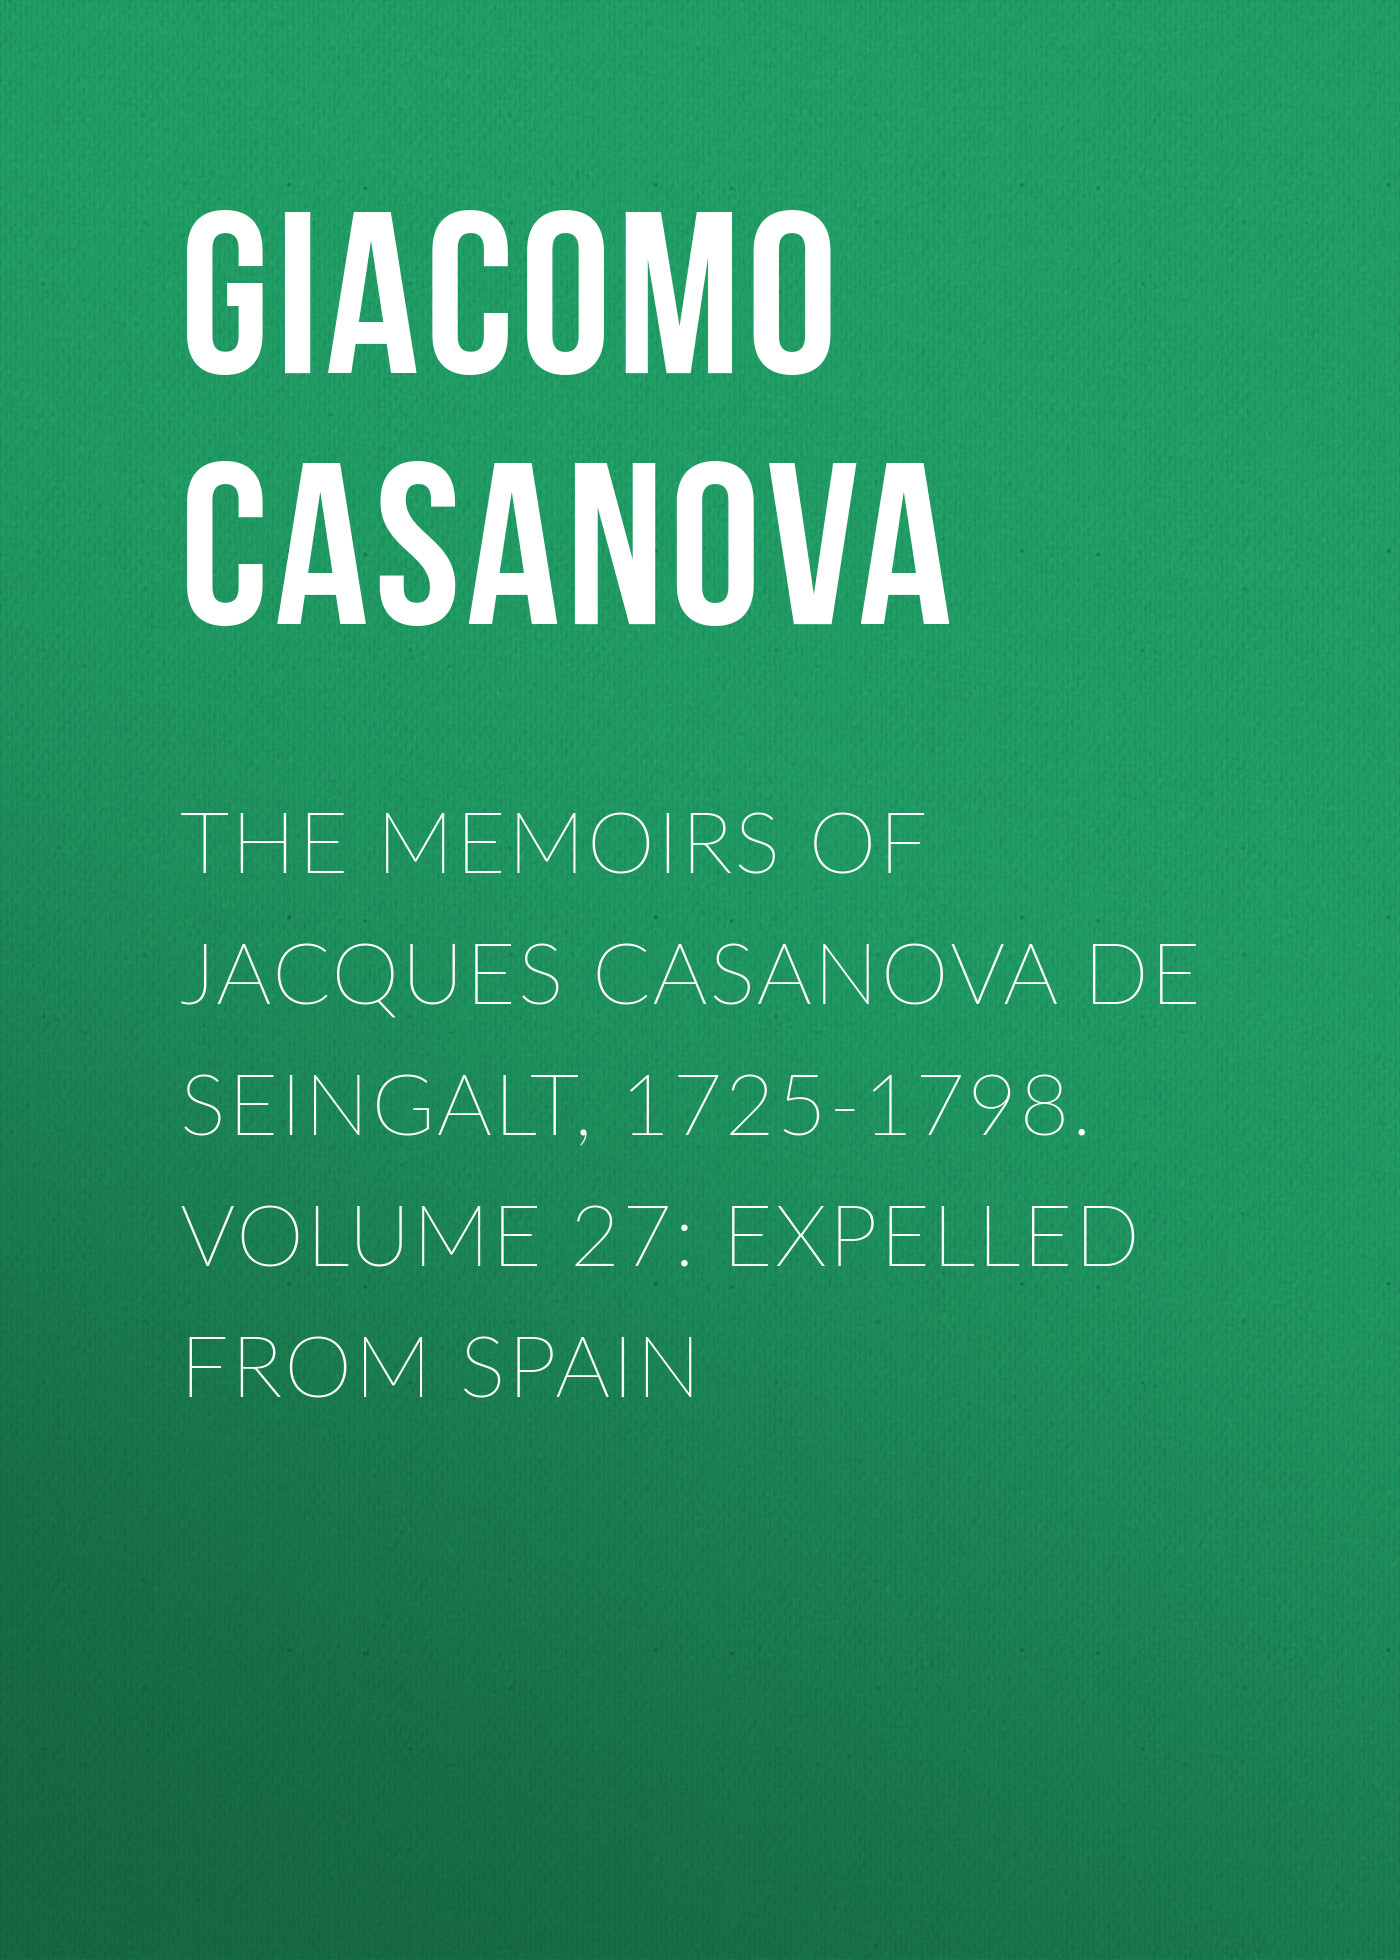 Giacomo Casanova The Memoirs of Jacques Casanova de Seingalt, 1725-1798. Volume 27: Expelled from Spain expelled